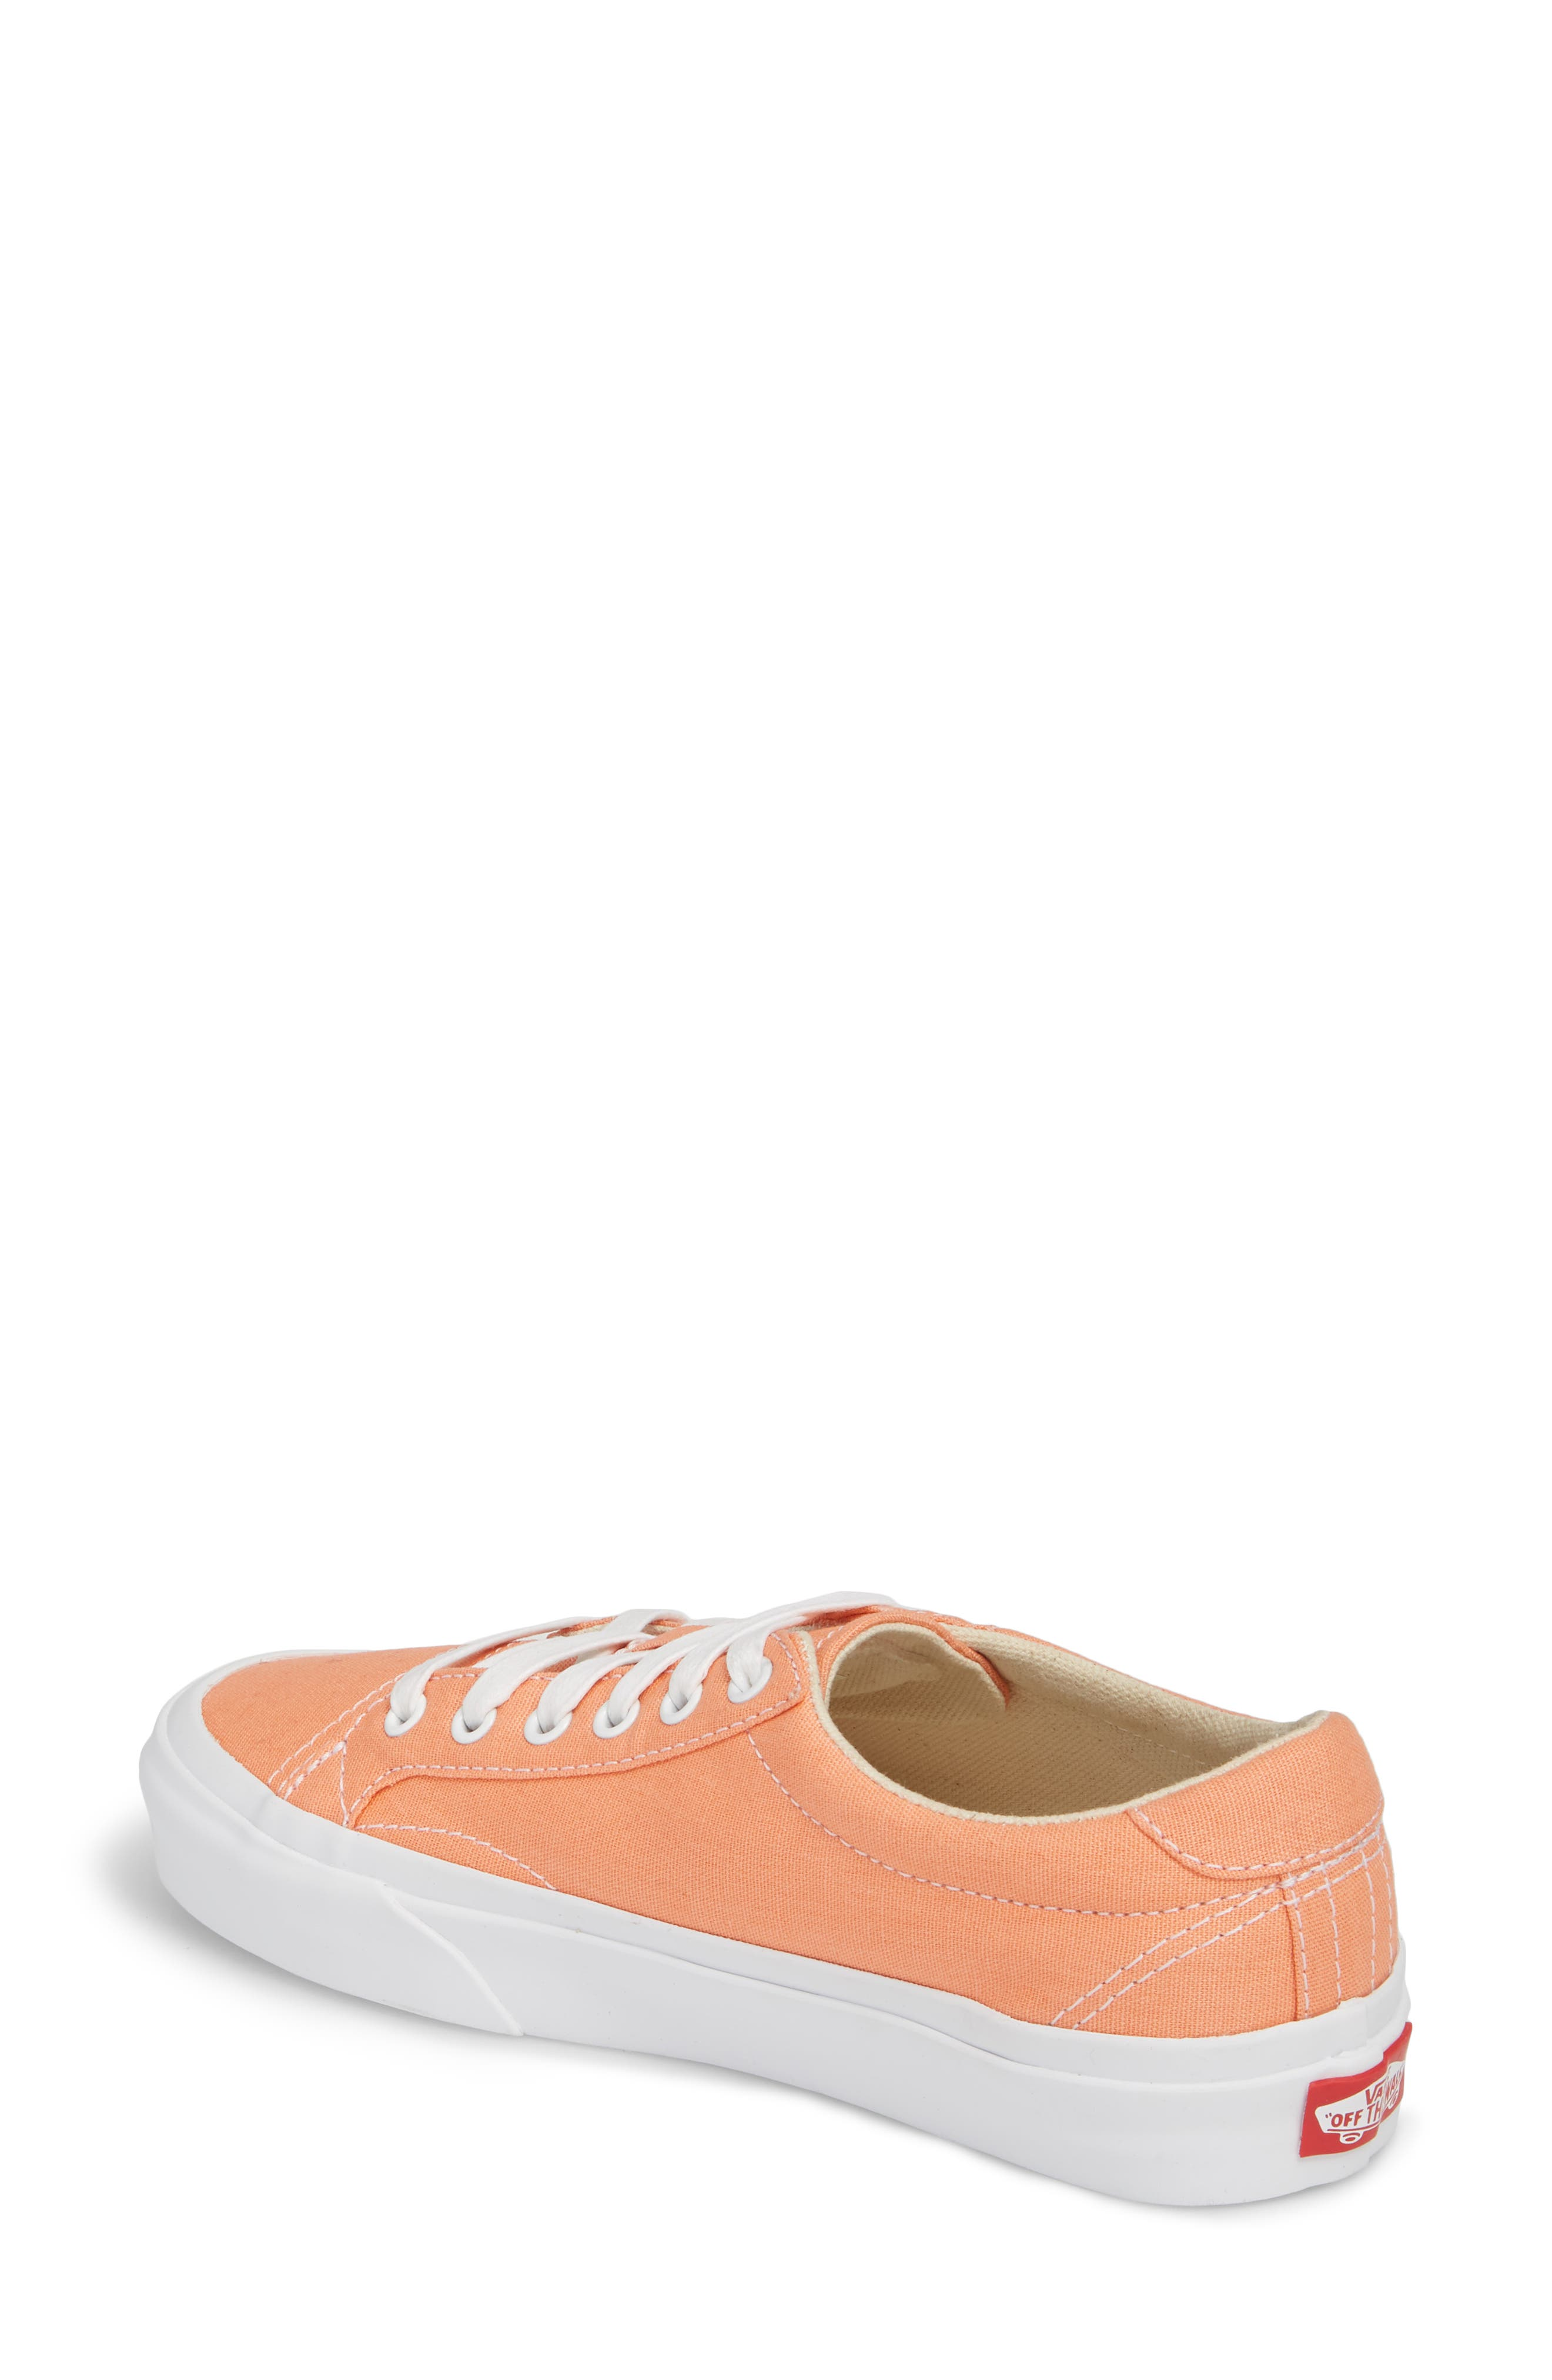 UA Court Low Top Sneaker,                             Alternate thumbnail 2, color,                             Peach Pink/ True White